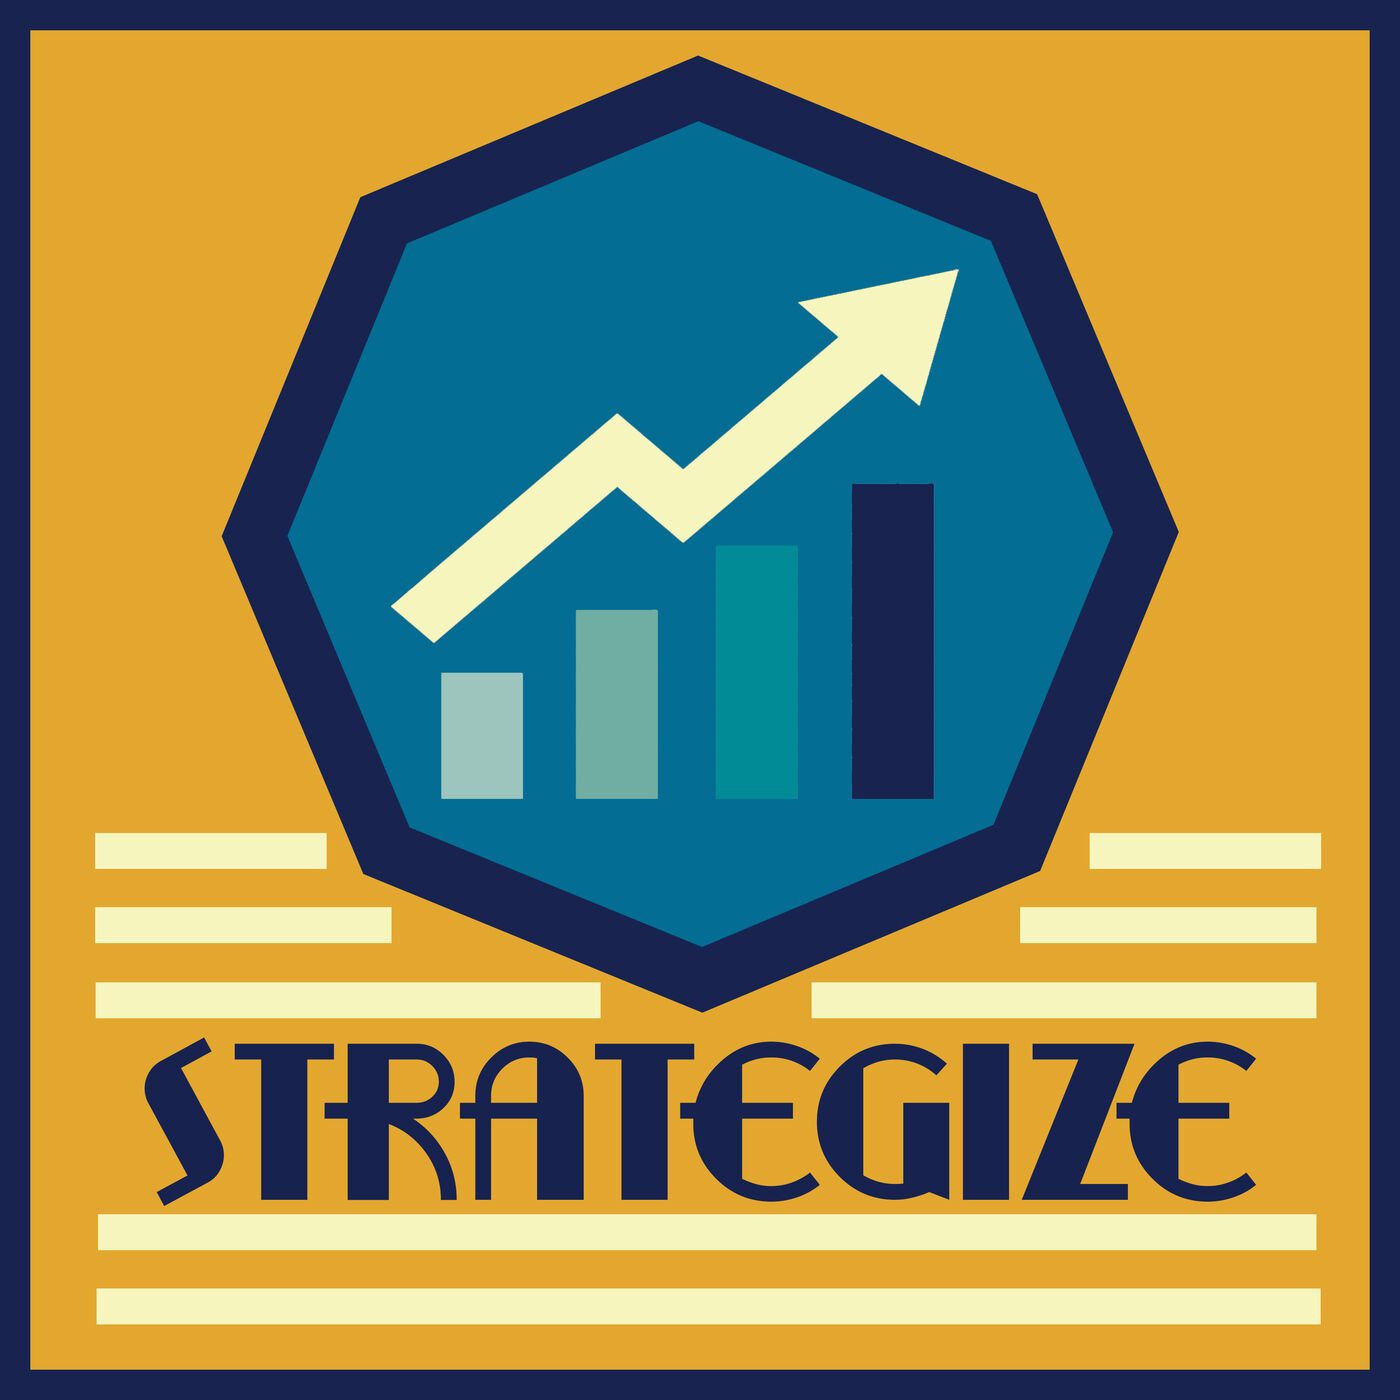 Strategize: Find Your Winning Moves